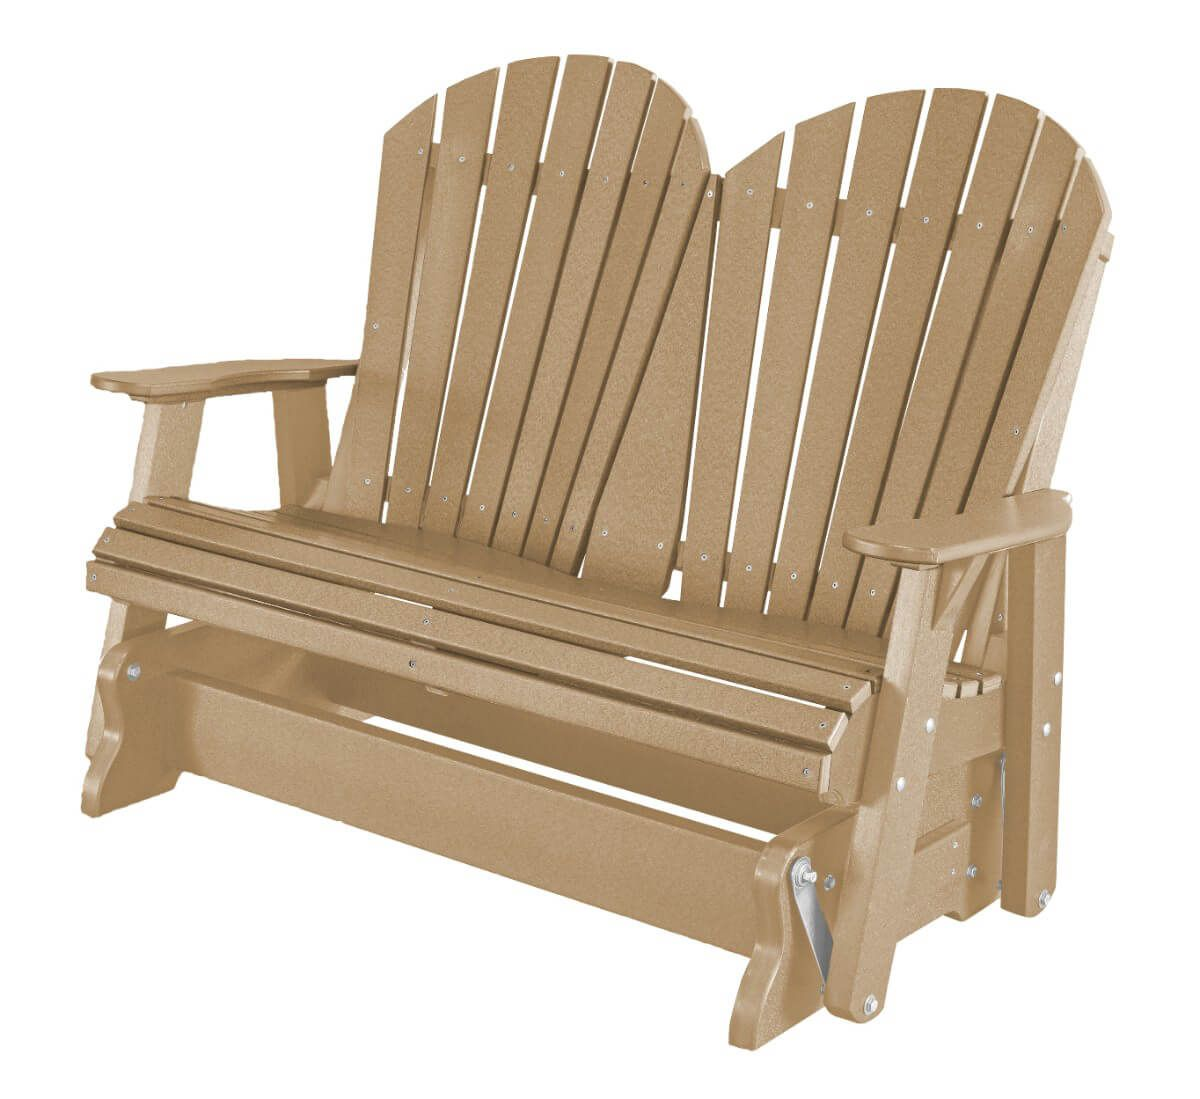 Weathered Wood Sidra Outdoor Double Glider